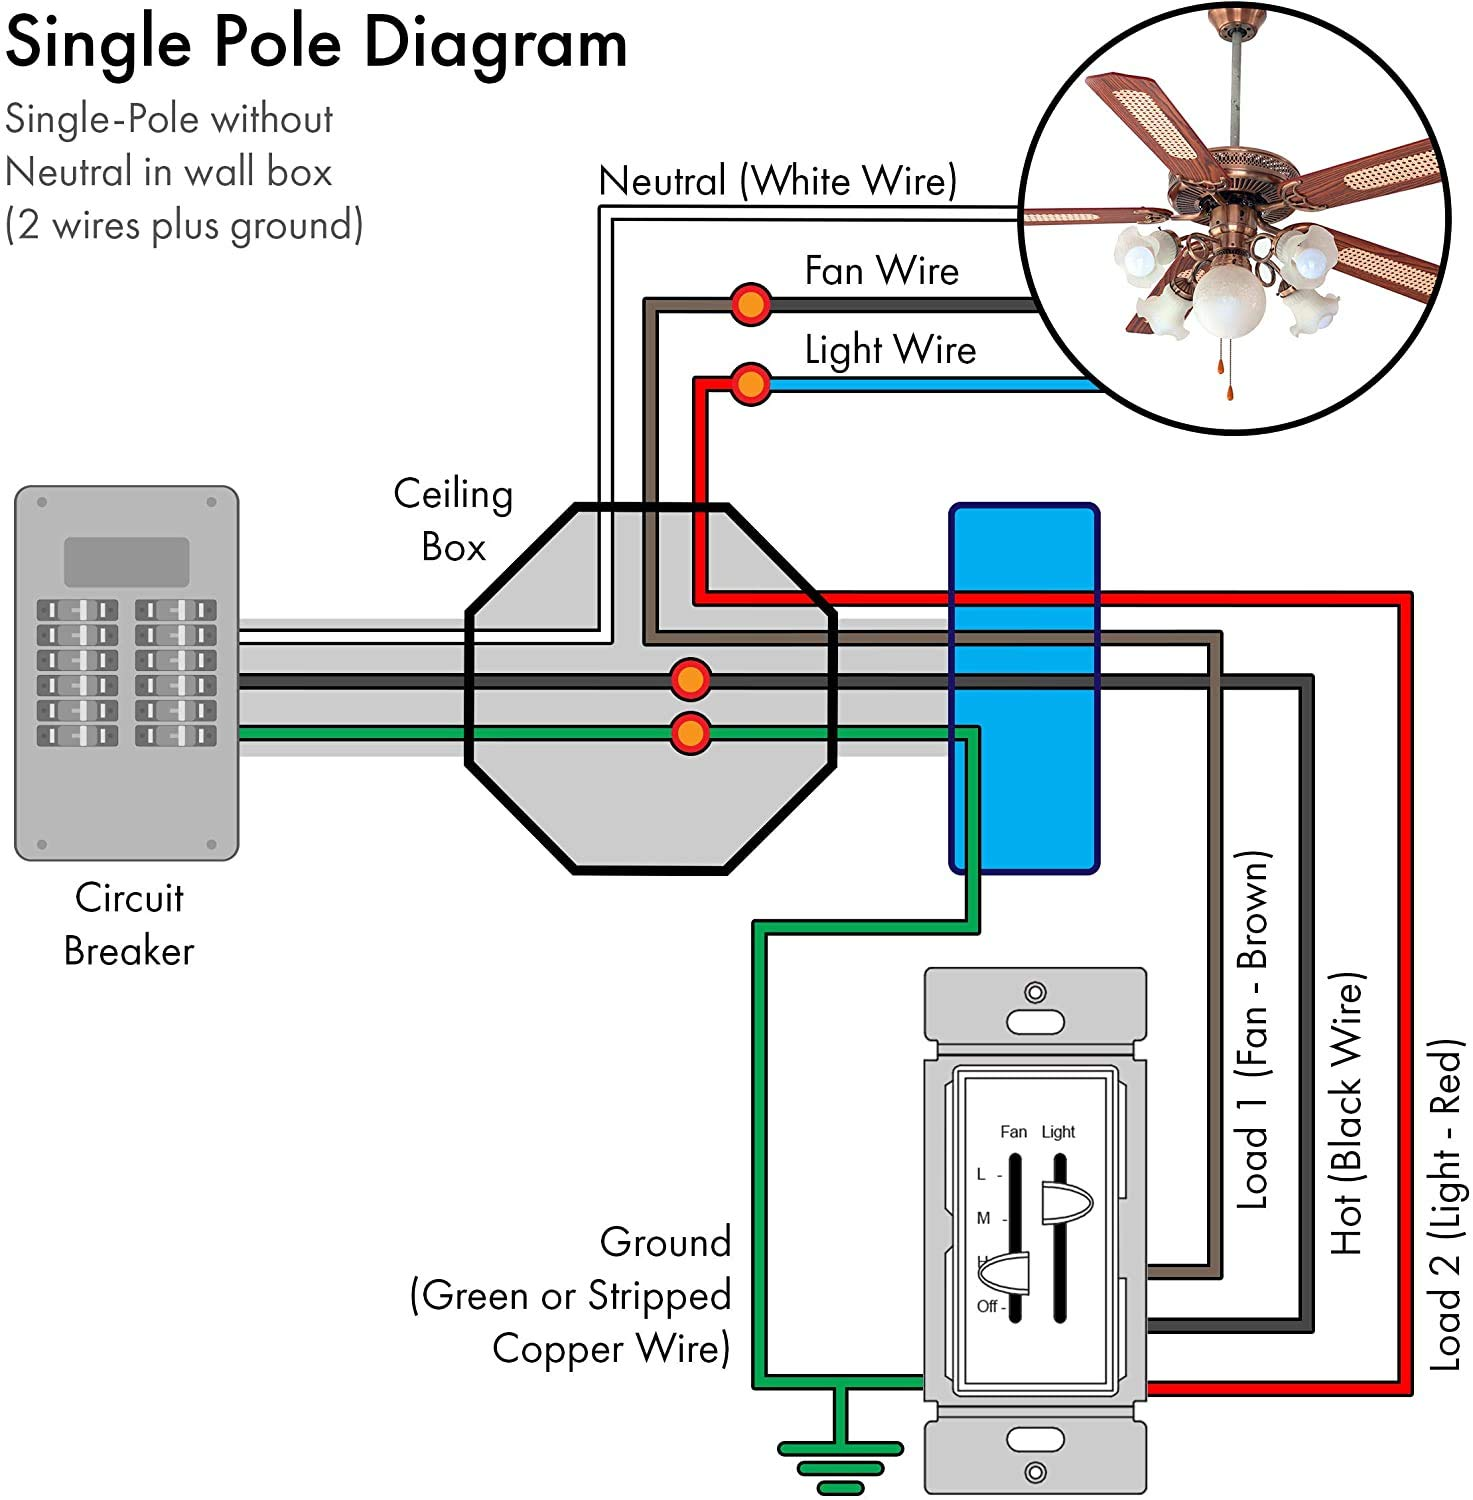 Hunter 27182 Wiring Diagram from images-na.ssl-images-amazon.com